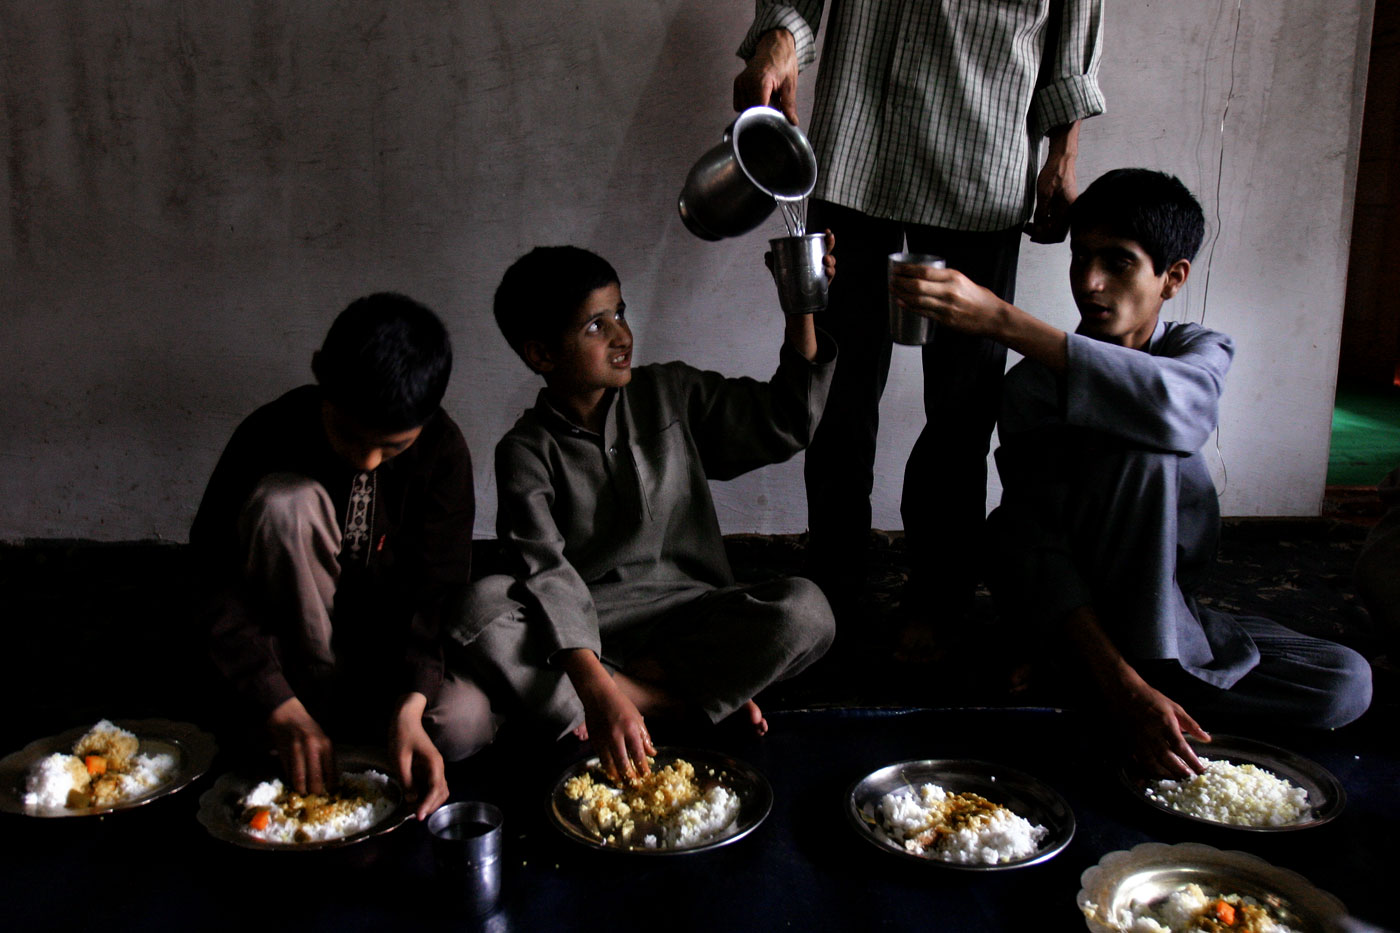 (l-r) Mozam Iqbal, Nasir-Ul-Islam, and Waqar Ahmad have lunch at the orphanage.The children receive three nutritious meals each day, meals they may not otherwise receive if they were living on the streets.